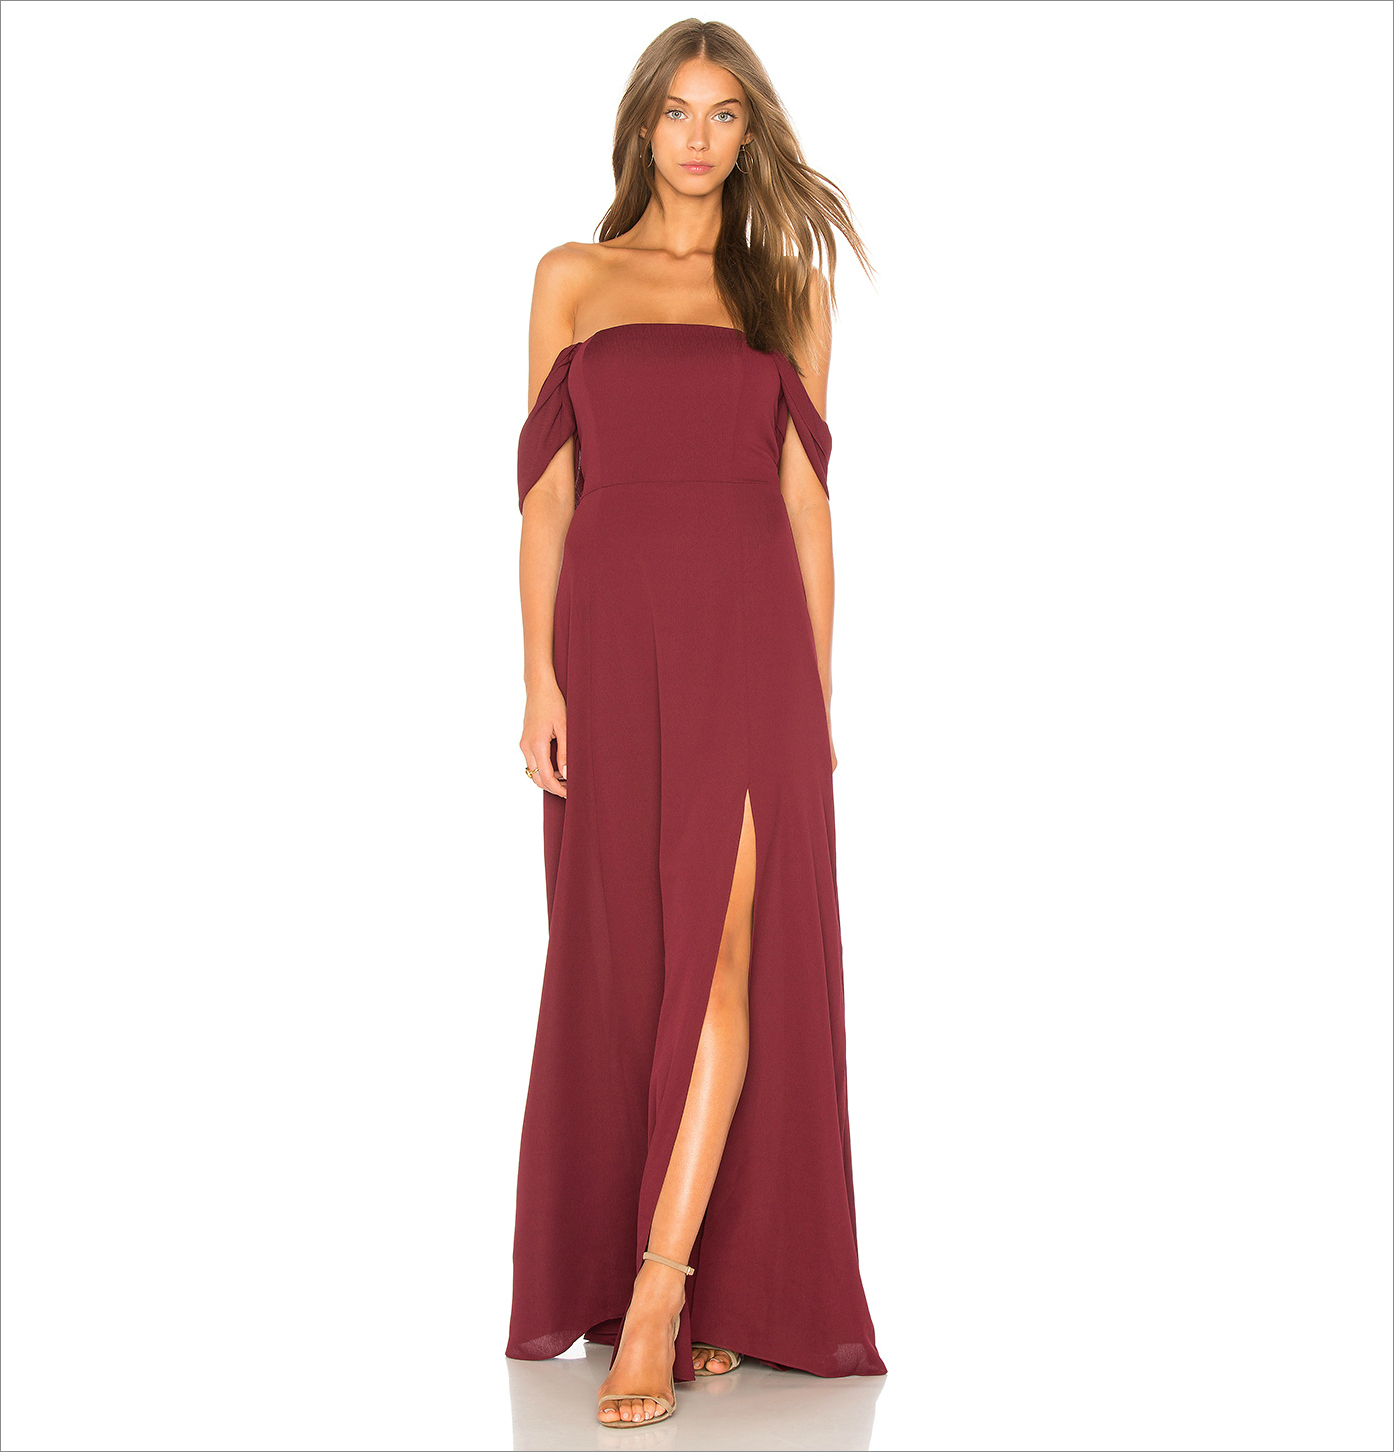 Off shoulder burgundy bridesmaid dress idea under 150 revolve